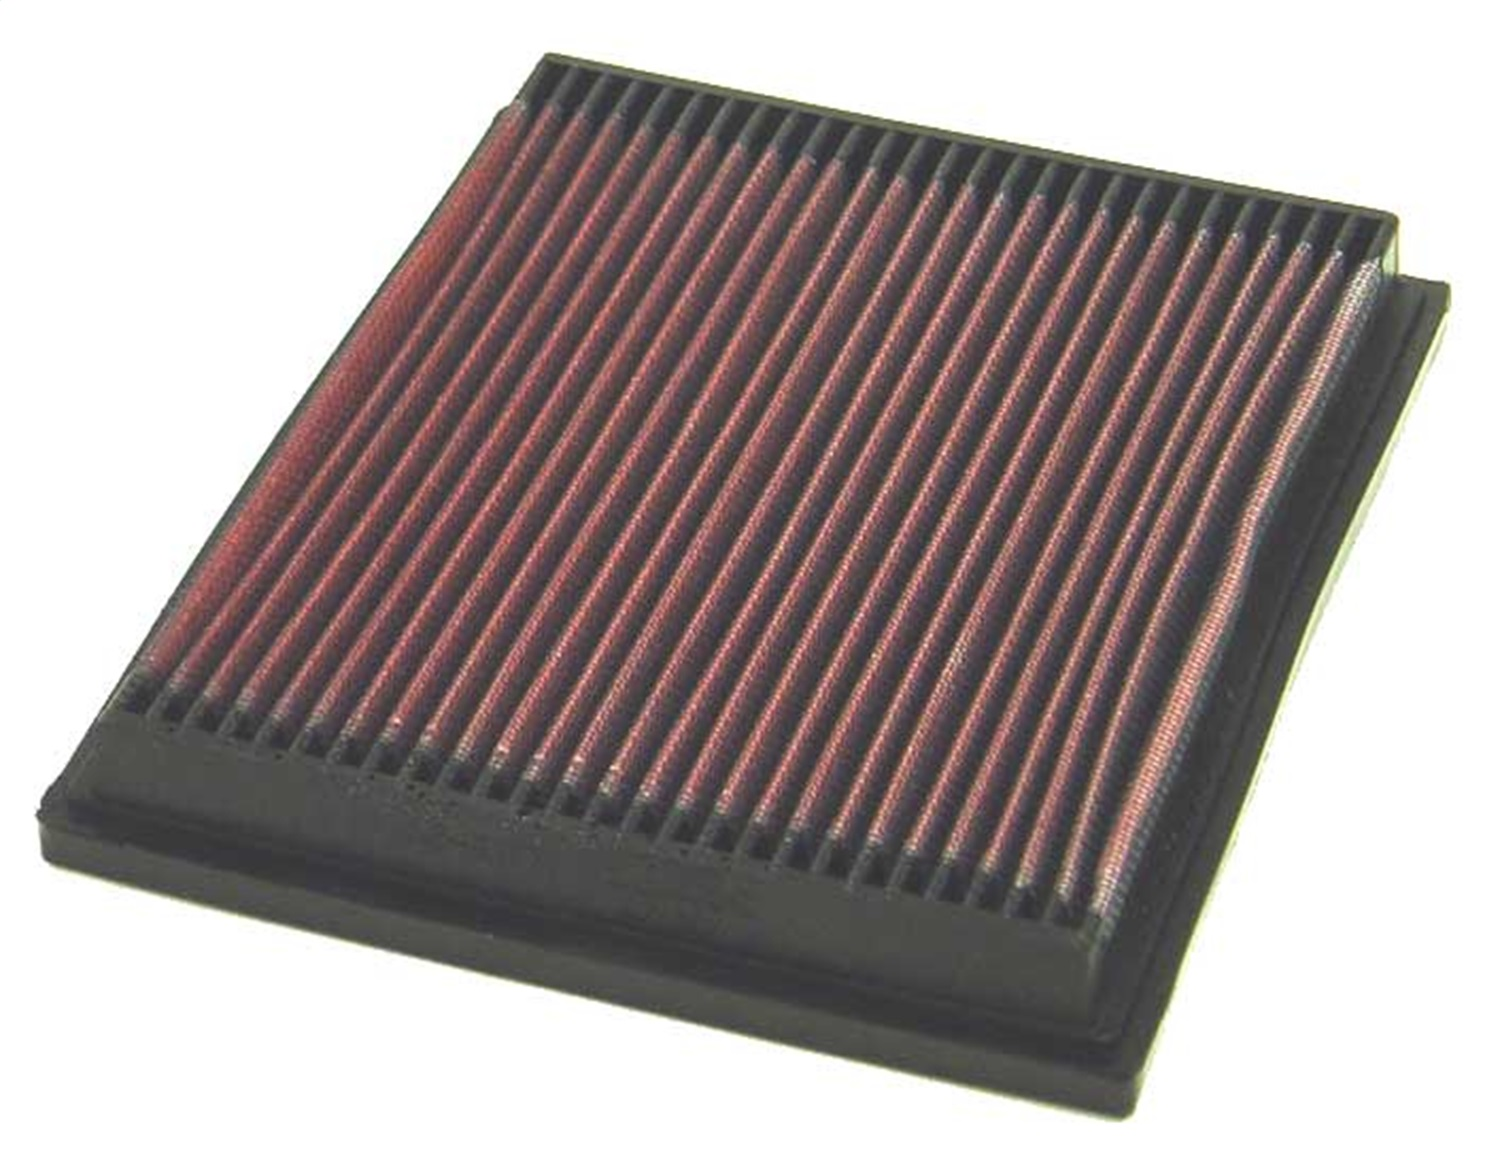 K&N Filters 33-2117 Air Filter Fits 88-98 929 B2200 B2600 MPV 33-2117